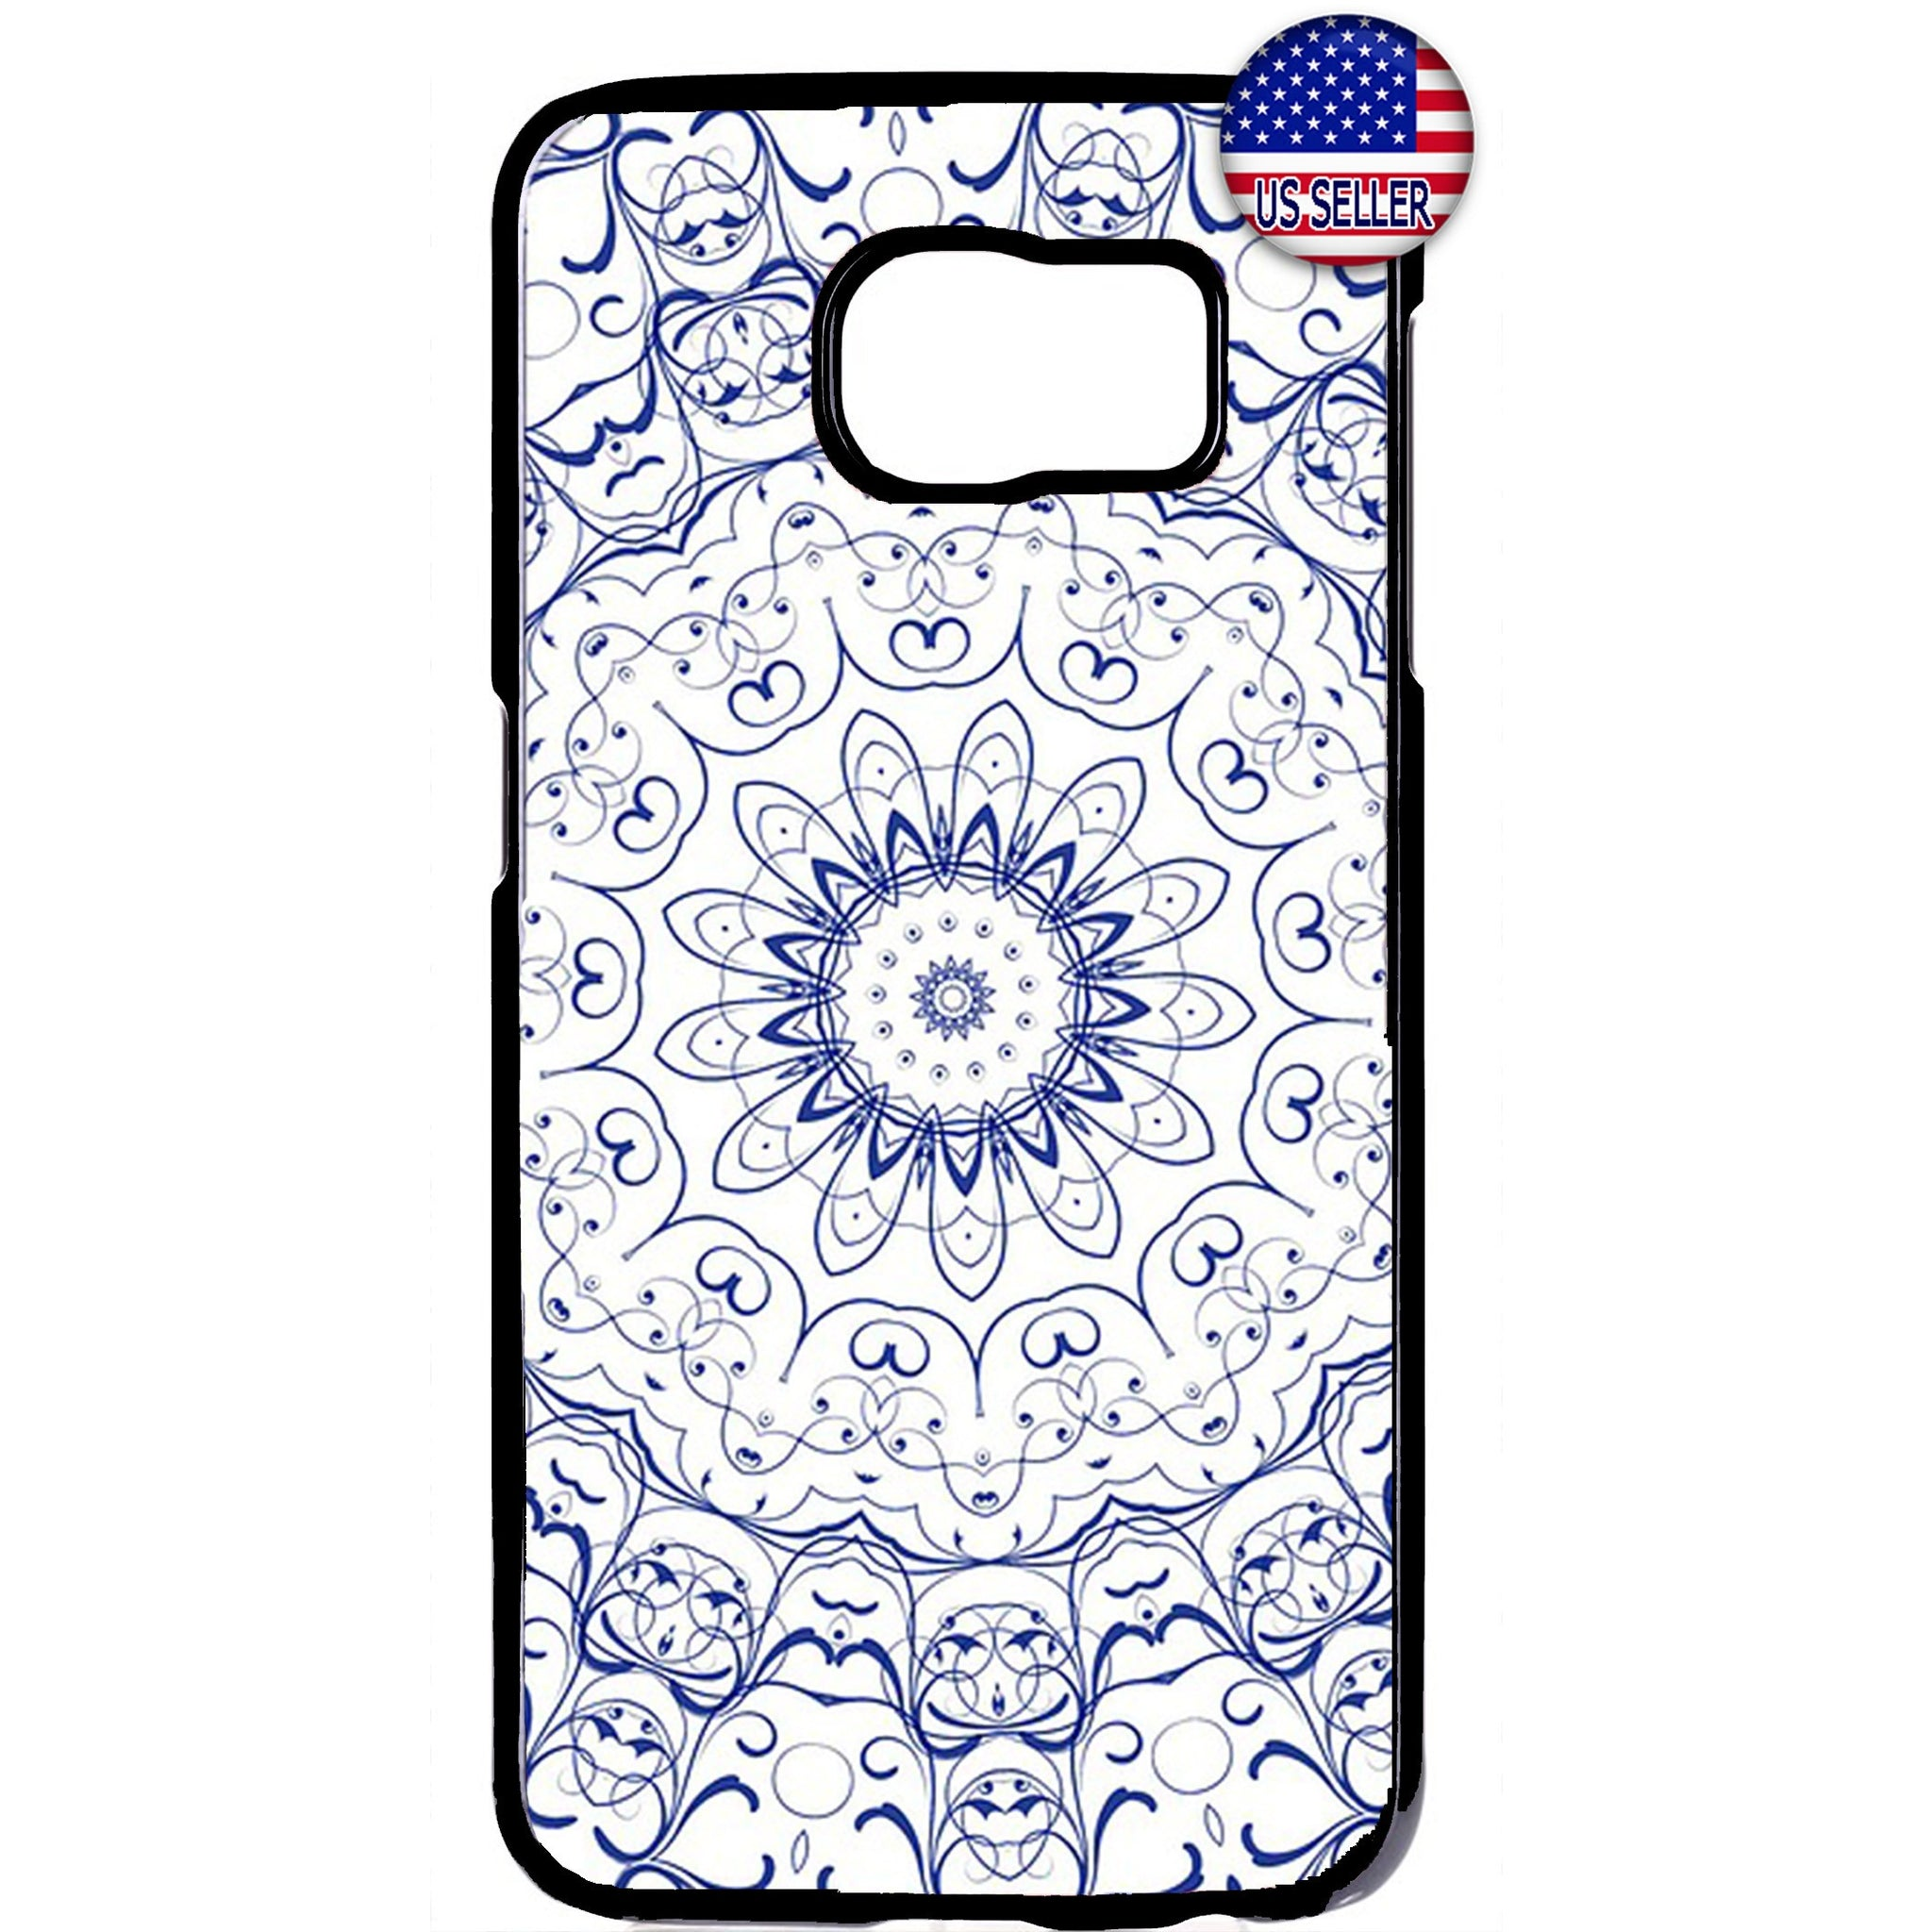 Blue mandala Henna Style Rubber Case Cover For Samsung Galaxy Note